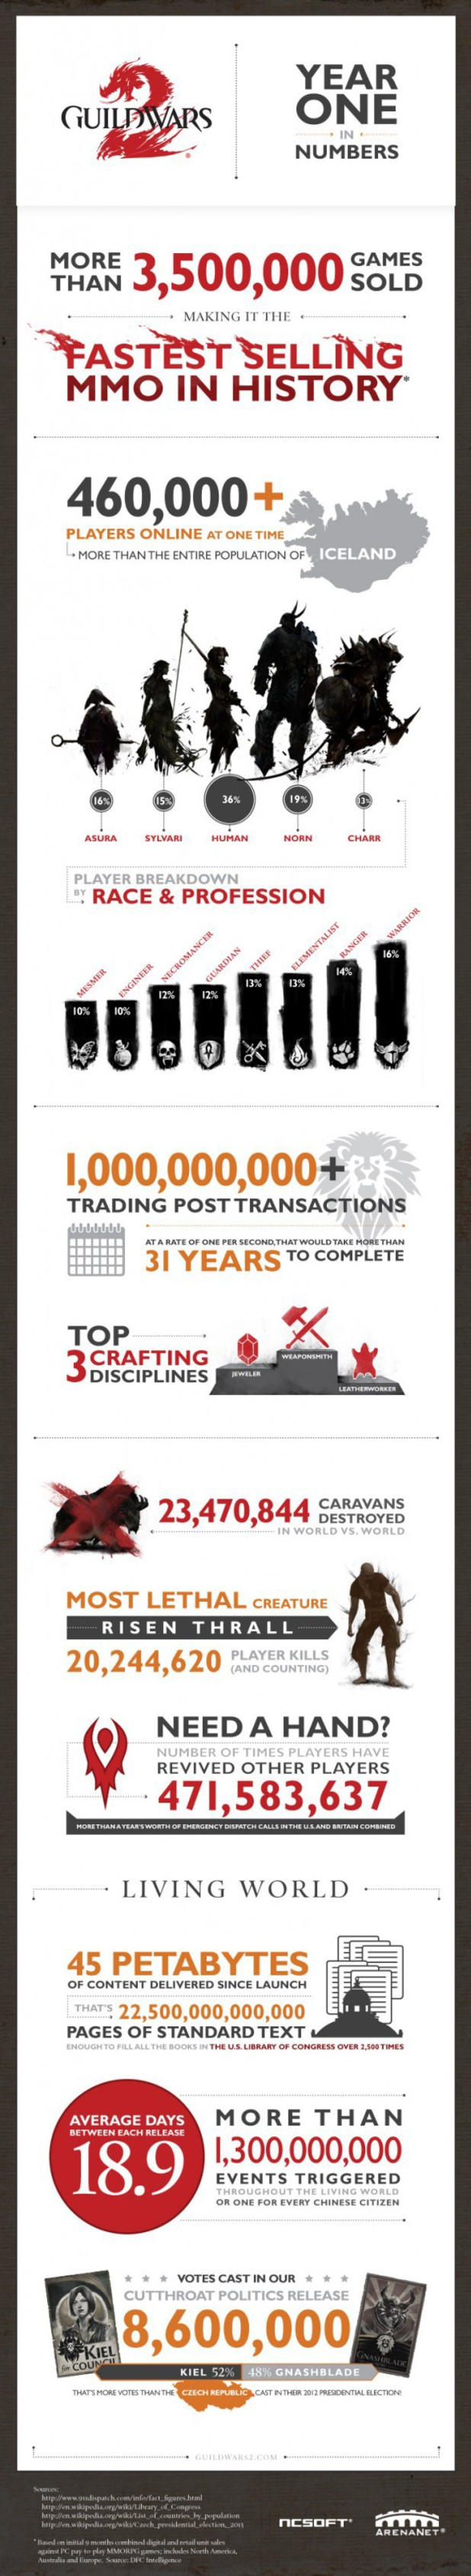 'Guild Wars 2' year one infographic